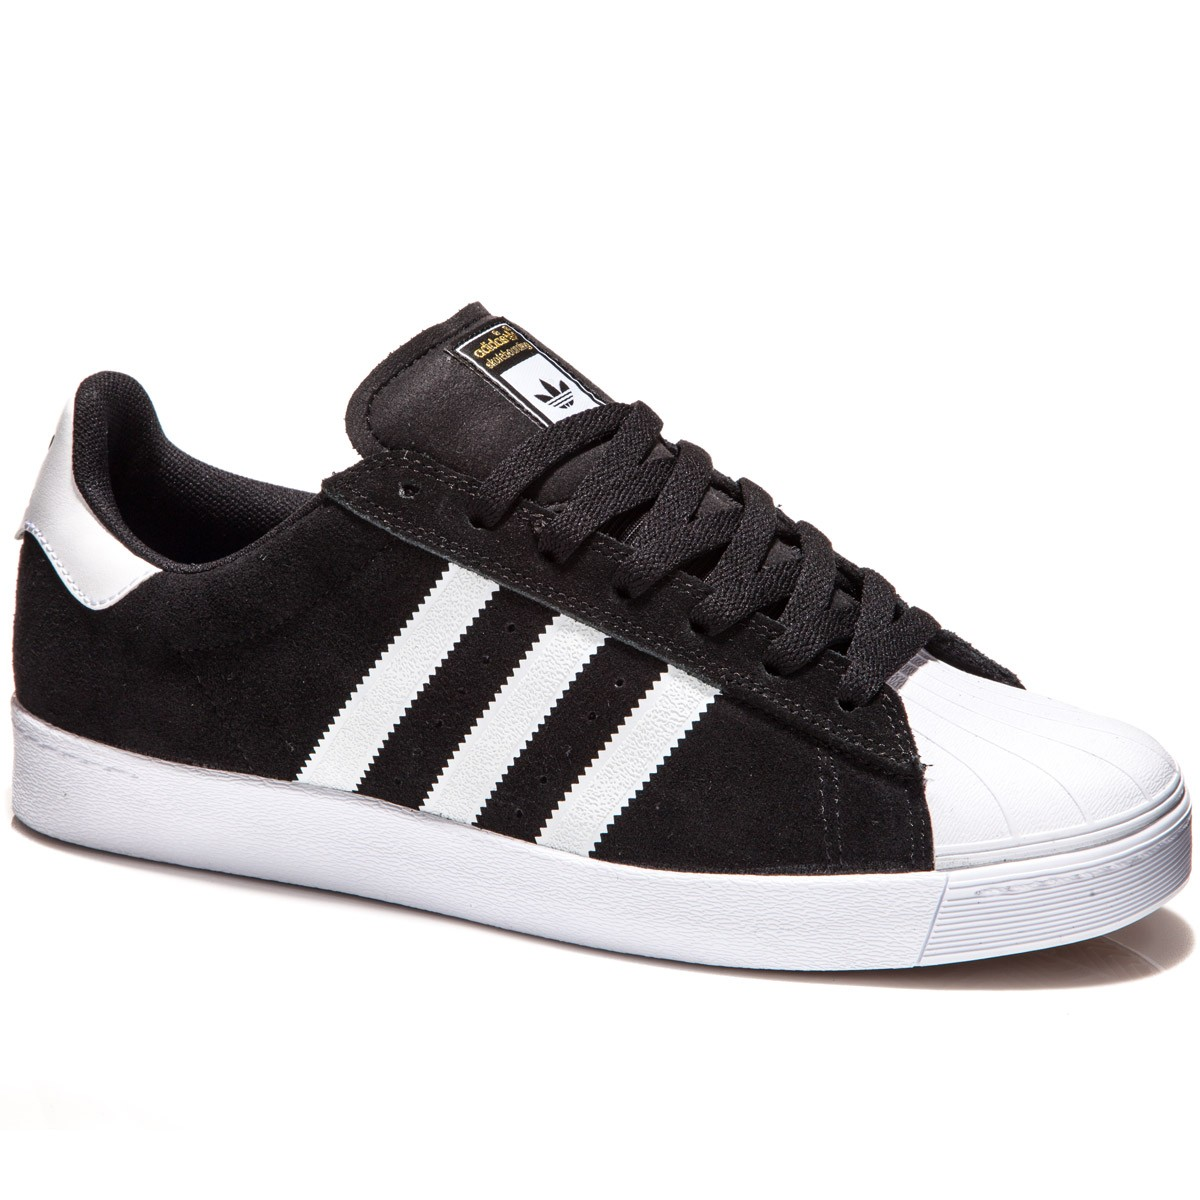 Adidas Superstar Vulc Adv Shoes White And Gold